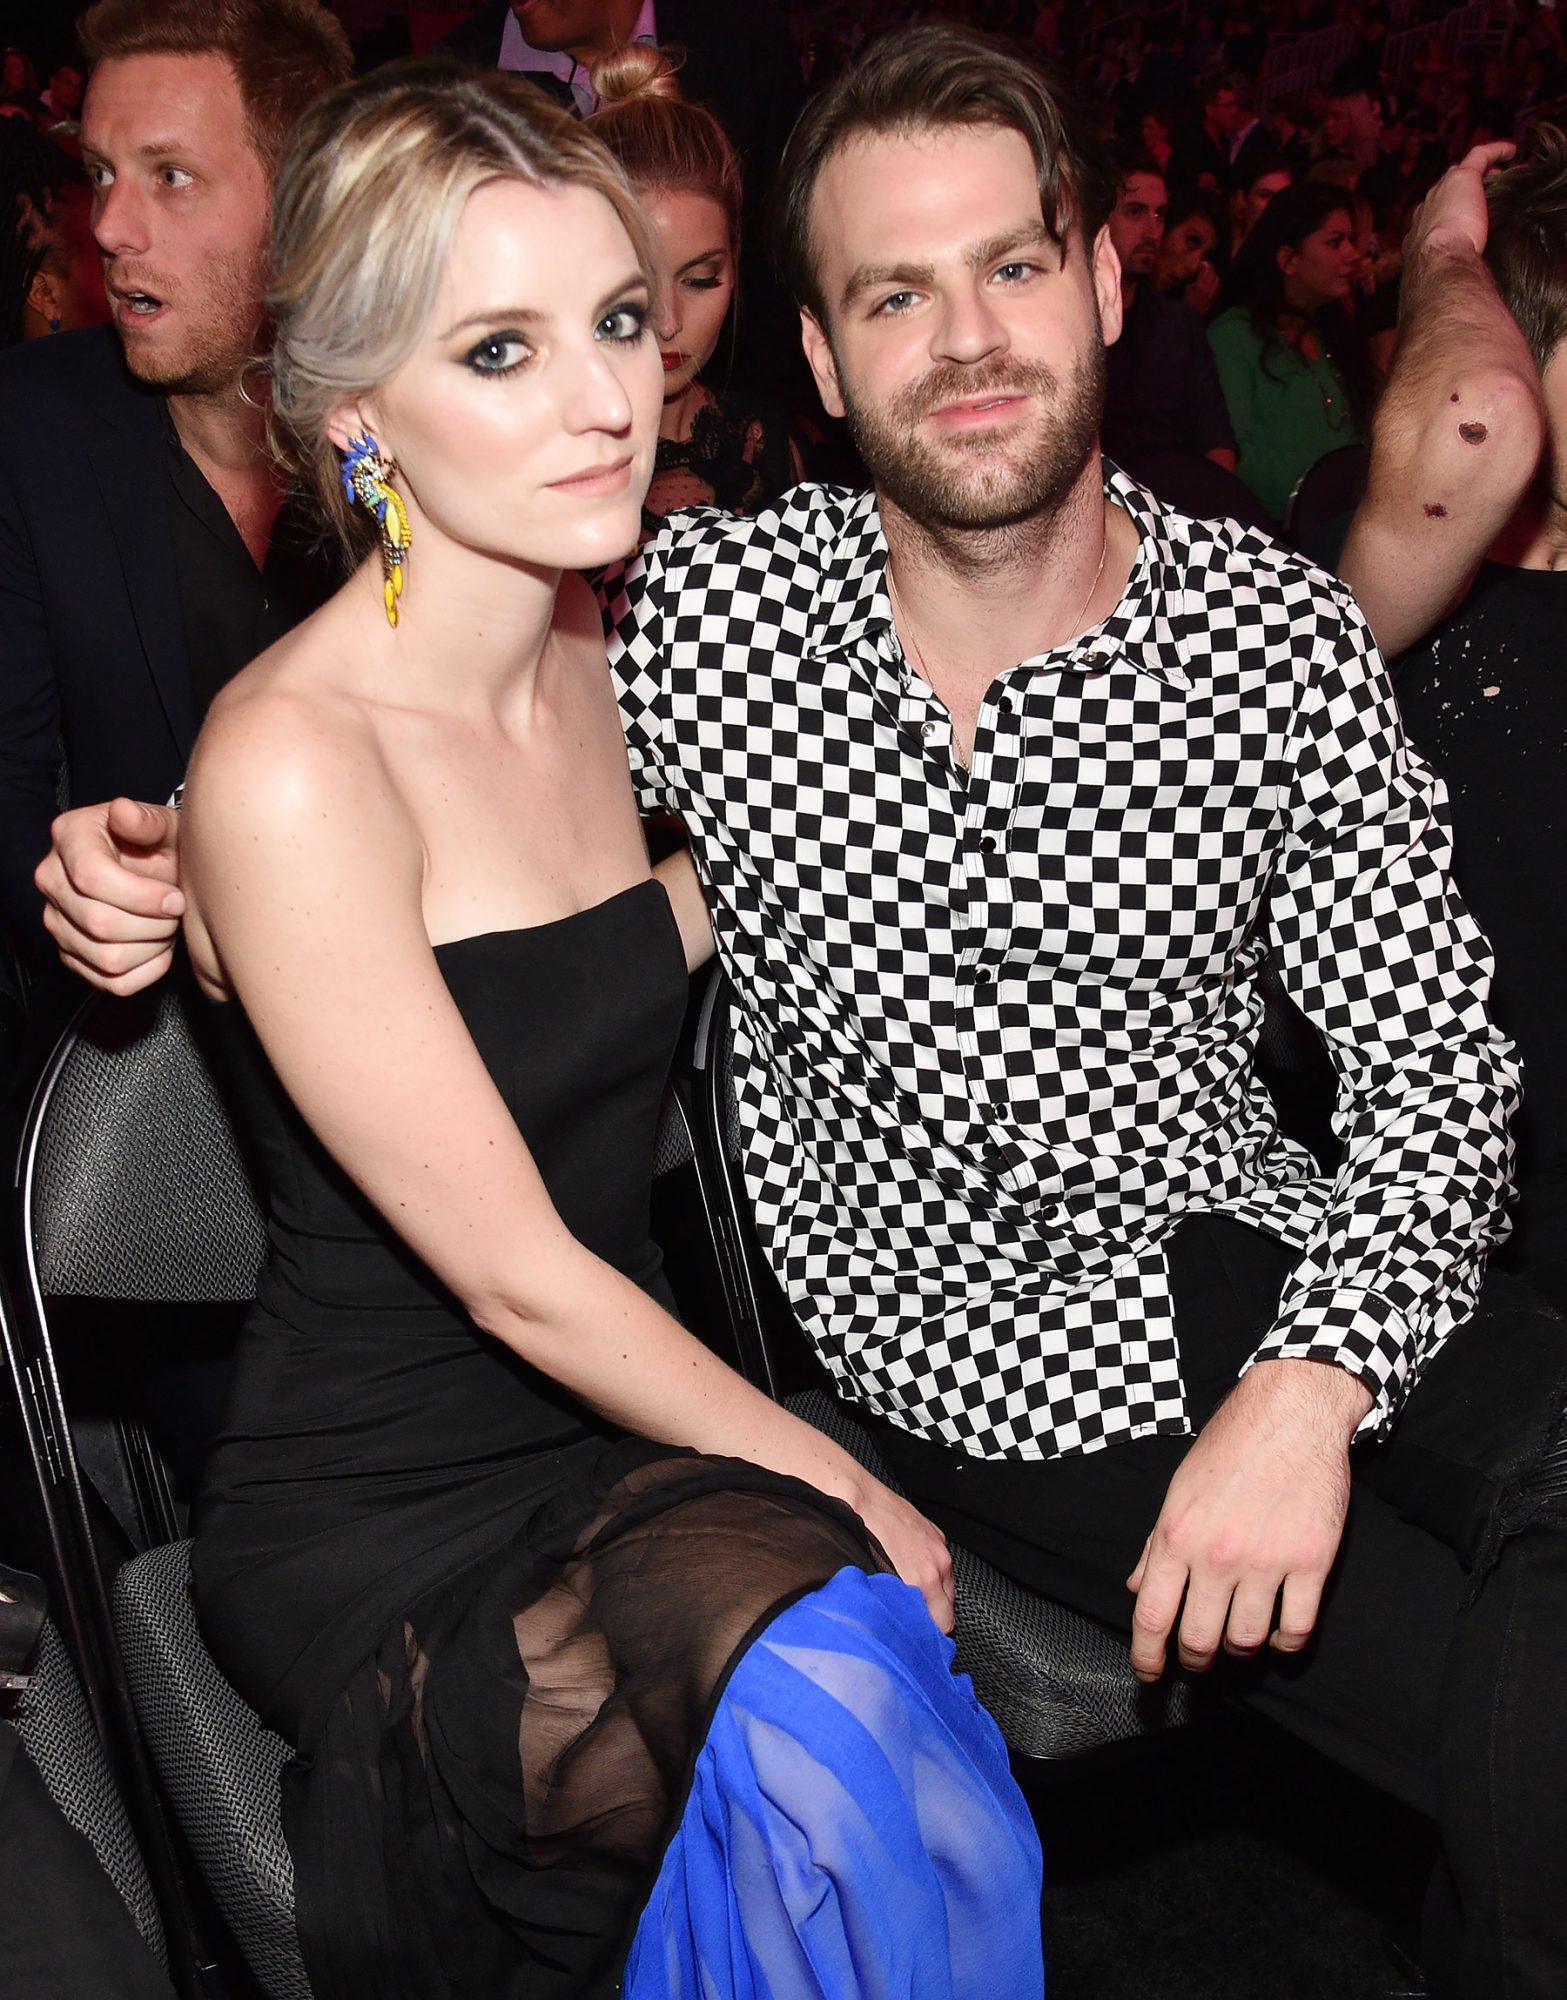 """Pall's then-girlfriend shared photographic evidence ofthe Grammy-winning deejay's - who is one half of the powerhouse EDM-pop duo The Chainsmokers- apparent indiscretion when photos of him kissing another woman were captured at a residential location by CCTV, in January 2018.                             """"Alex is disgusting. Men are trash. Don't ever forget it,"""" Woodward wrote on one of the surveillance shots, which Woodward later accused Pall of reporting to Instagram after it was deleted by the social network site.                             """"They'll look you in the eyes and tell you they love you. Then destroy you without a second thought,"""" she captioned another snap.                             They have since broken up. Pall is now dating model Katelyn Byrd."""